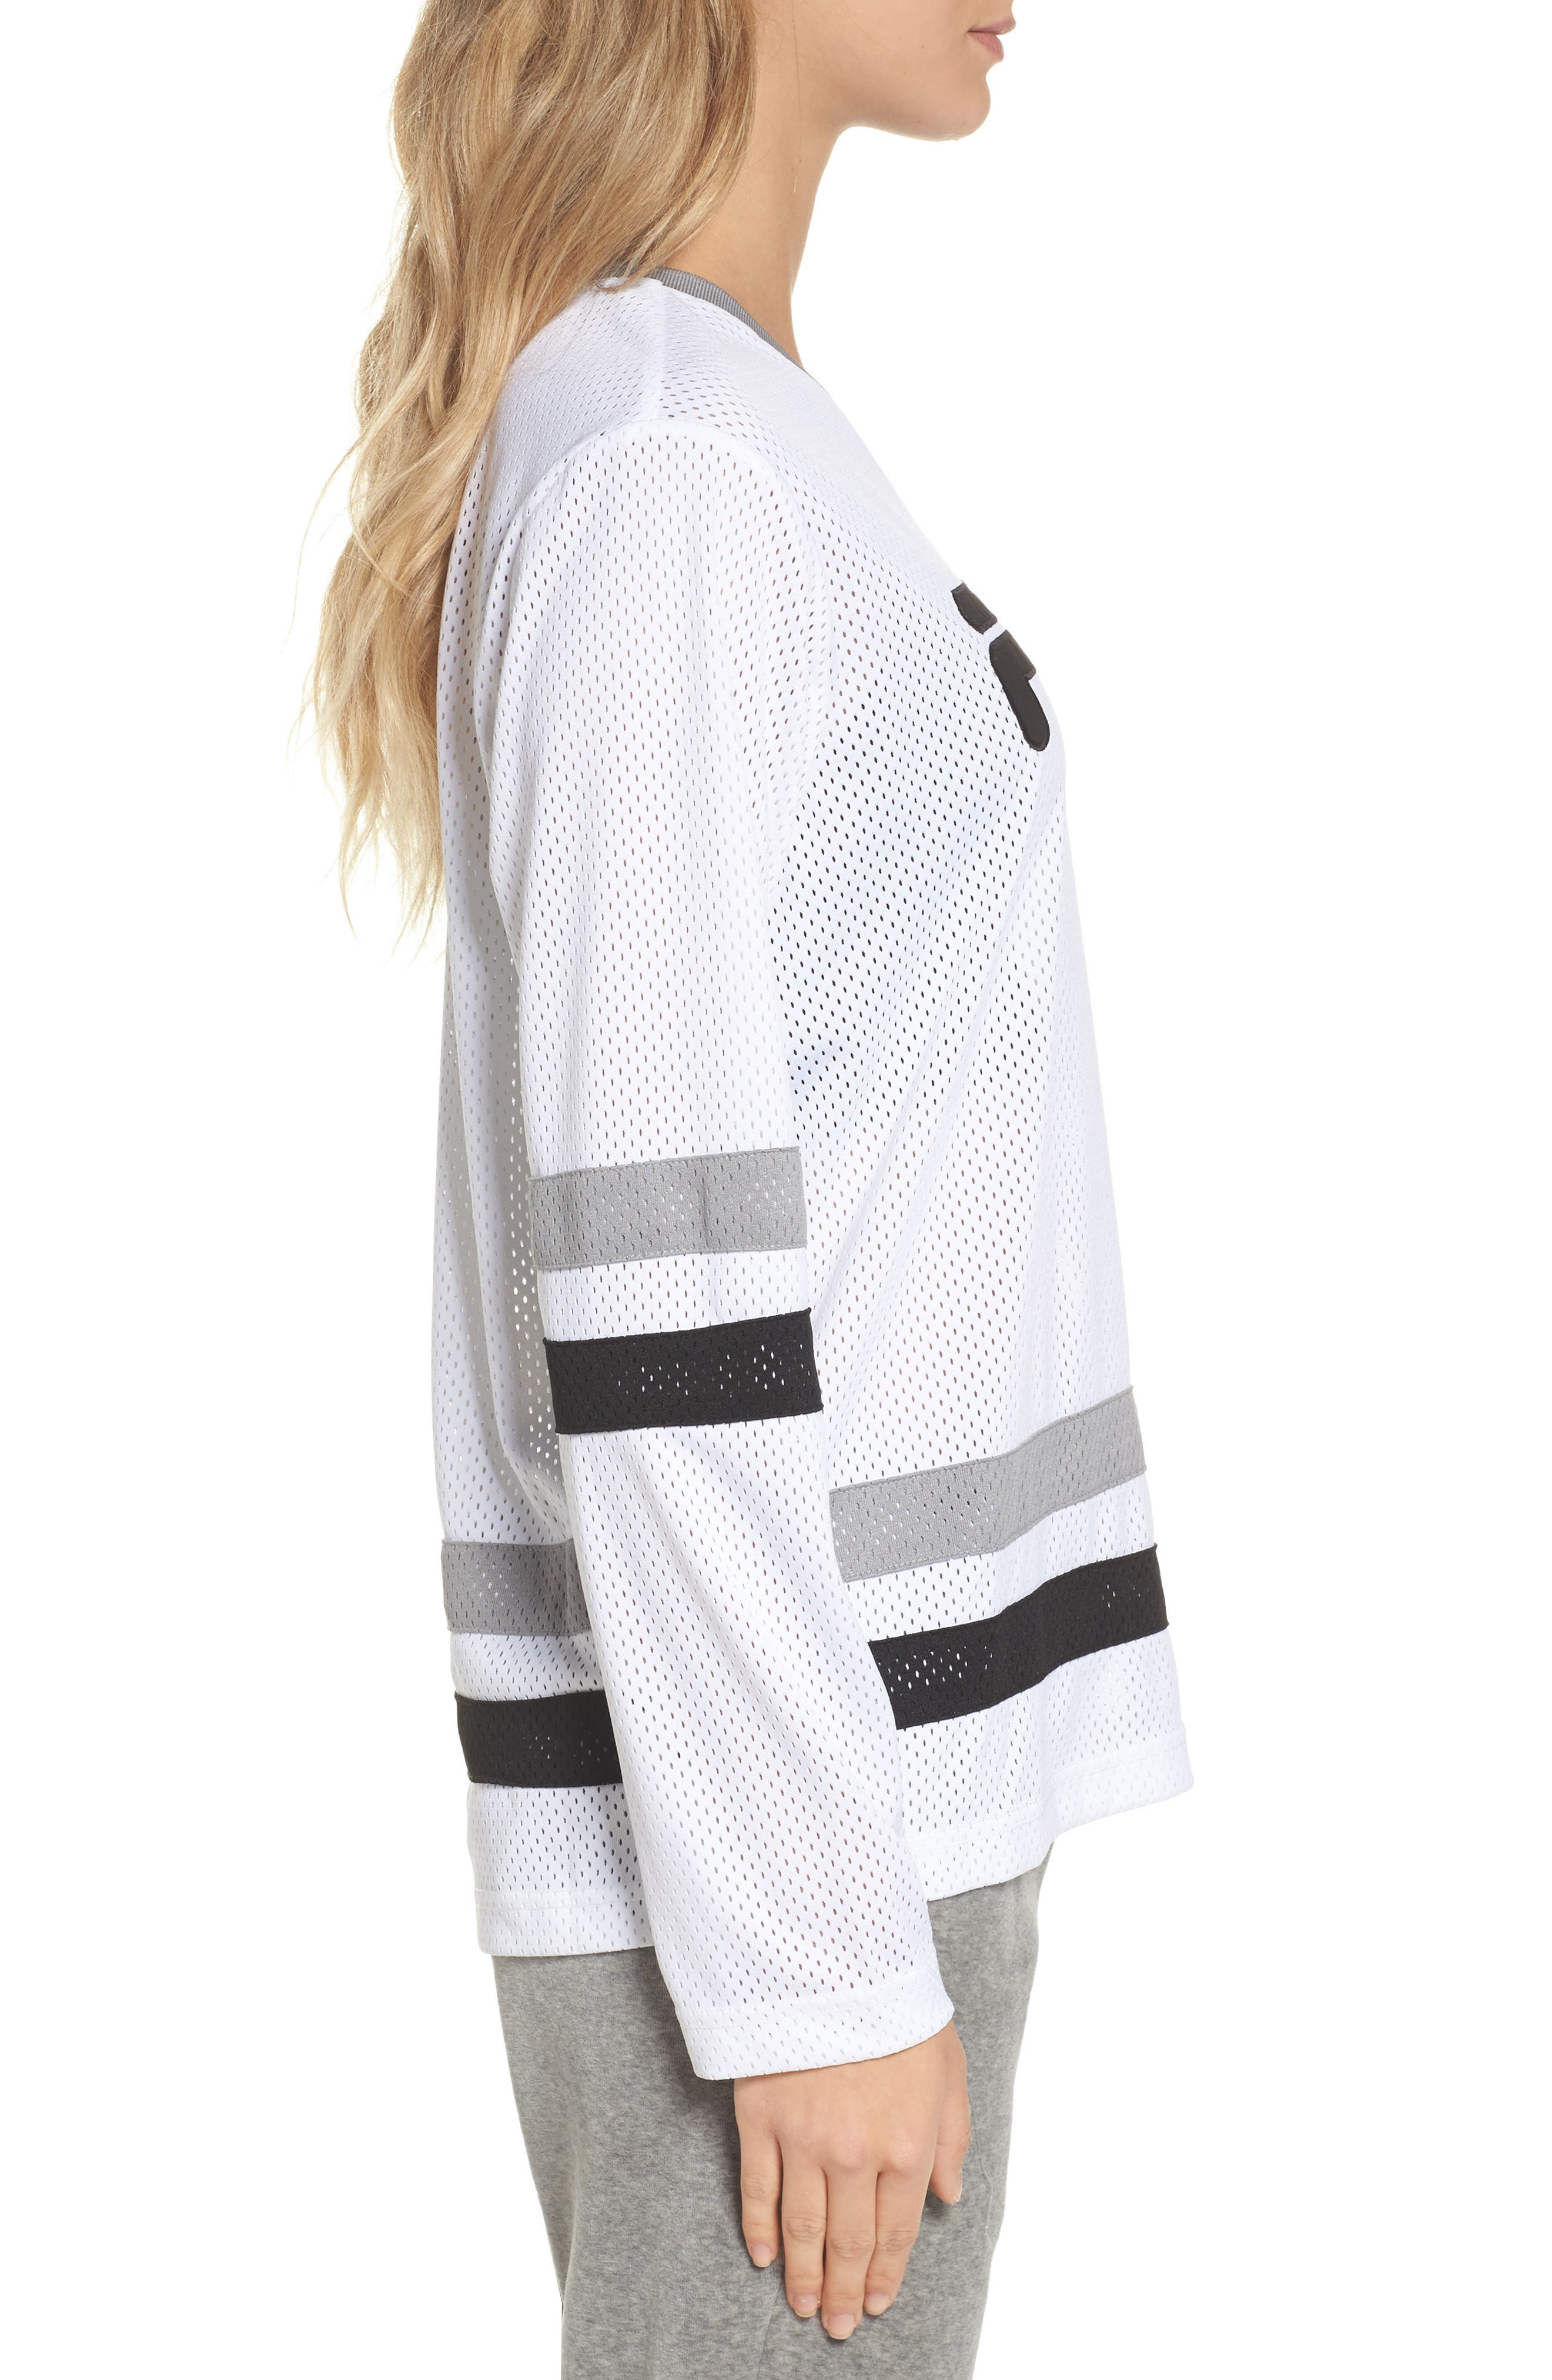 Tanya Hockey Jersey,                             Alternate thumbnail 3, color,                             White/ Black/ Silver Dollar